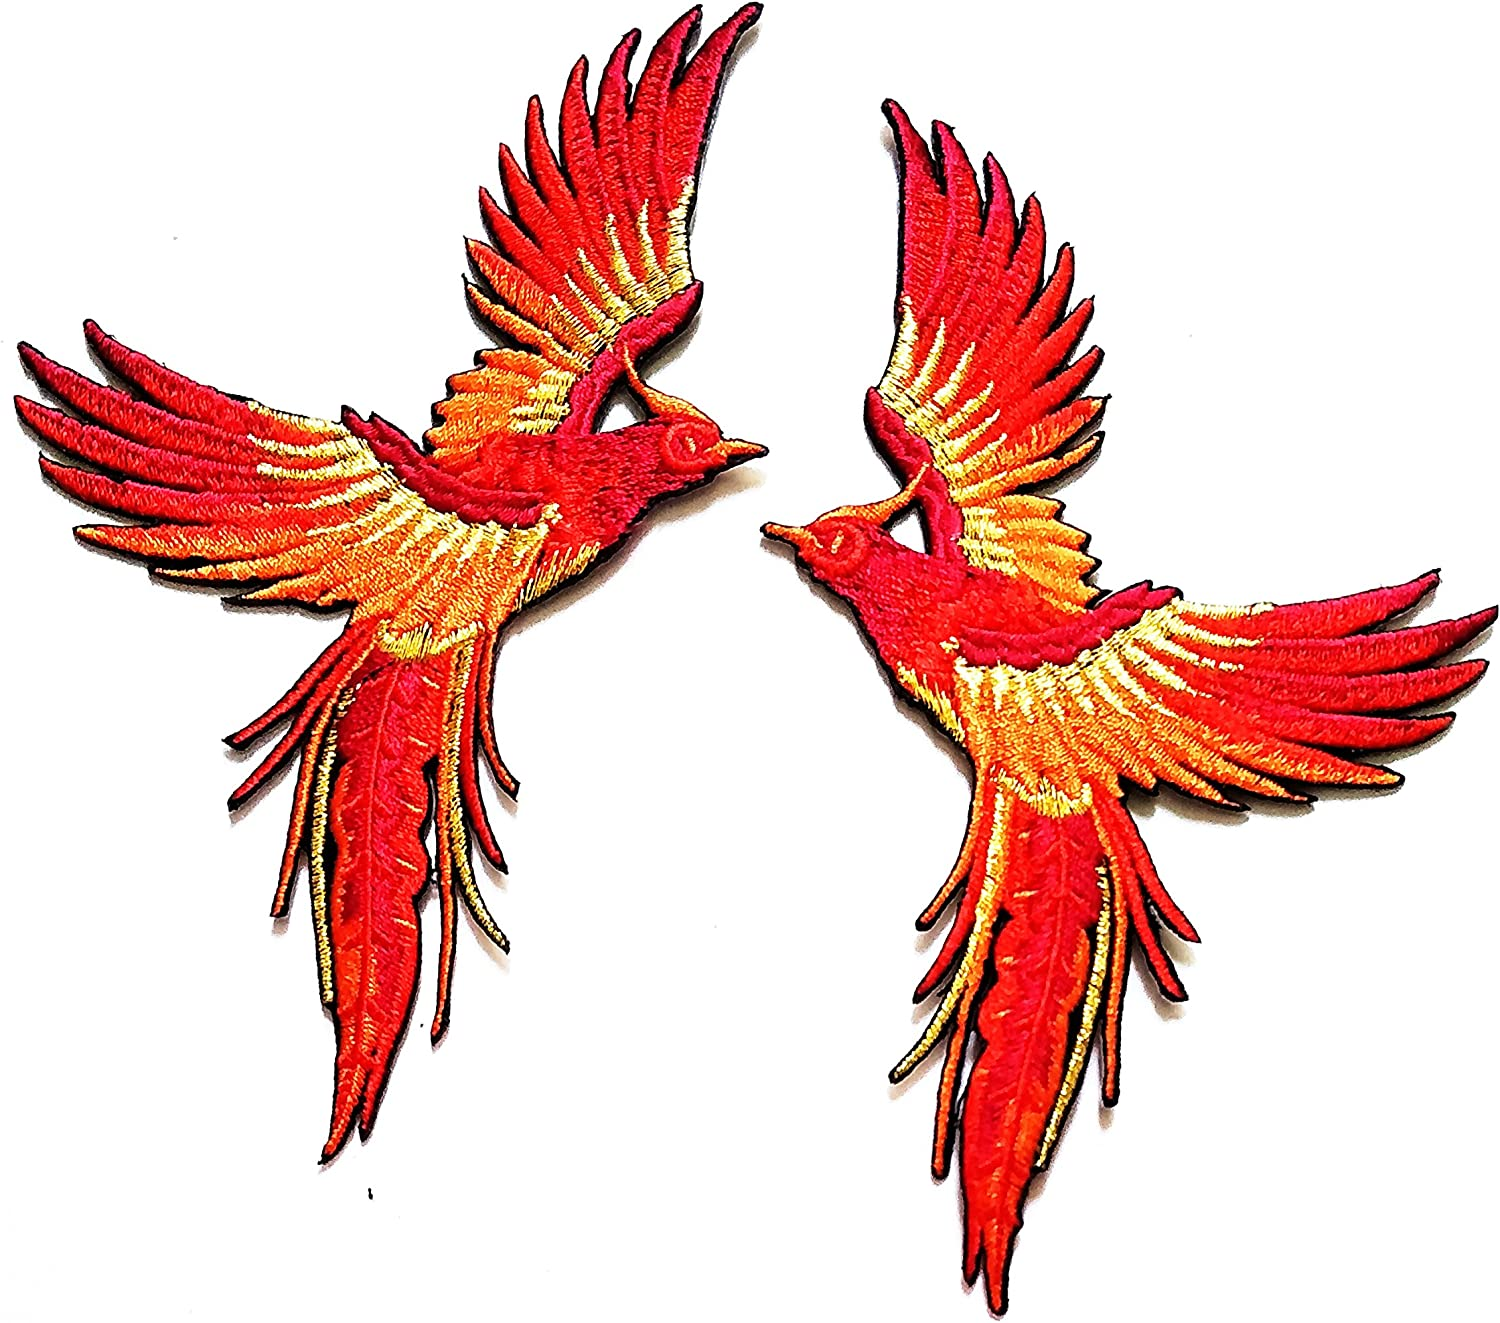 Nipitshop Patches Phoenix Phenix Birds Azure Orange Gold Embroidered Appliques Iron-on Patch for Clothes Backpacks T-Shirt Jeans Skirt Vests Scarf Hat Bag